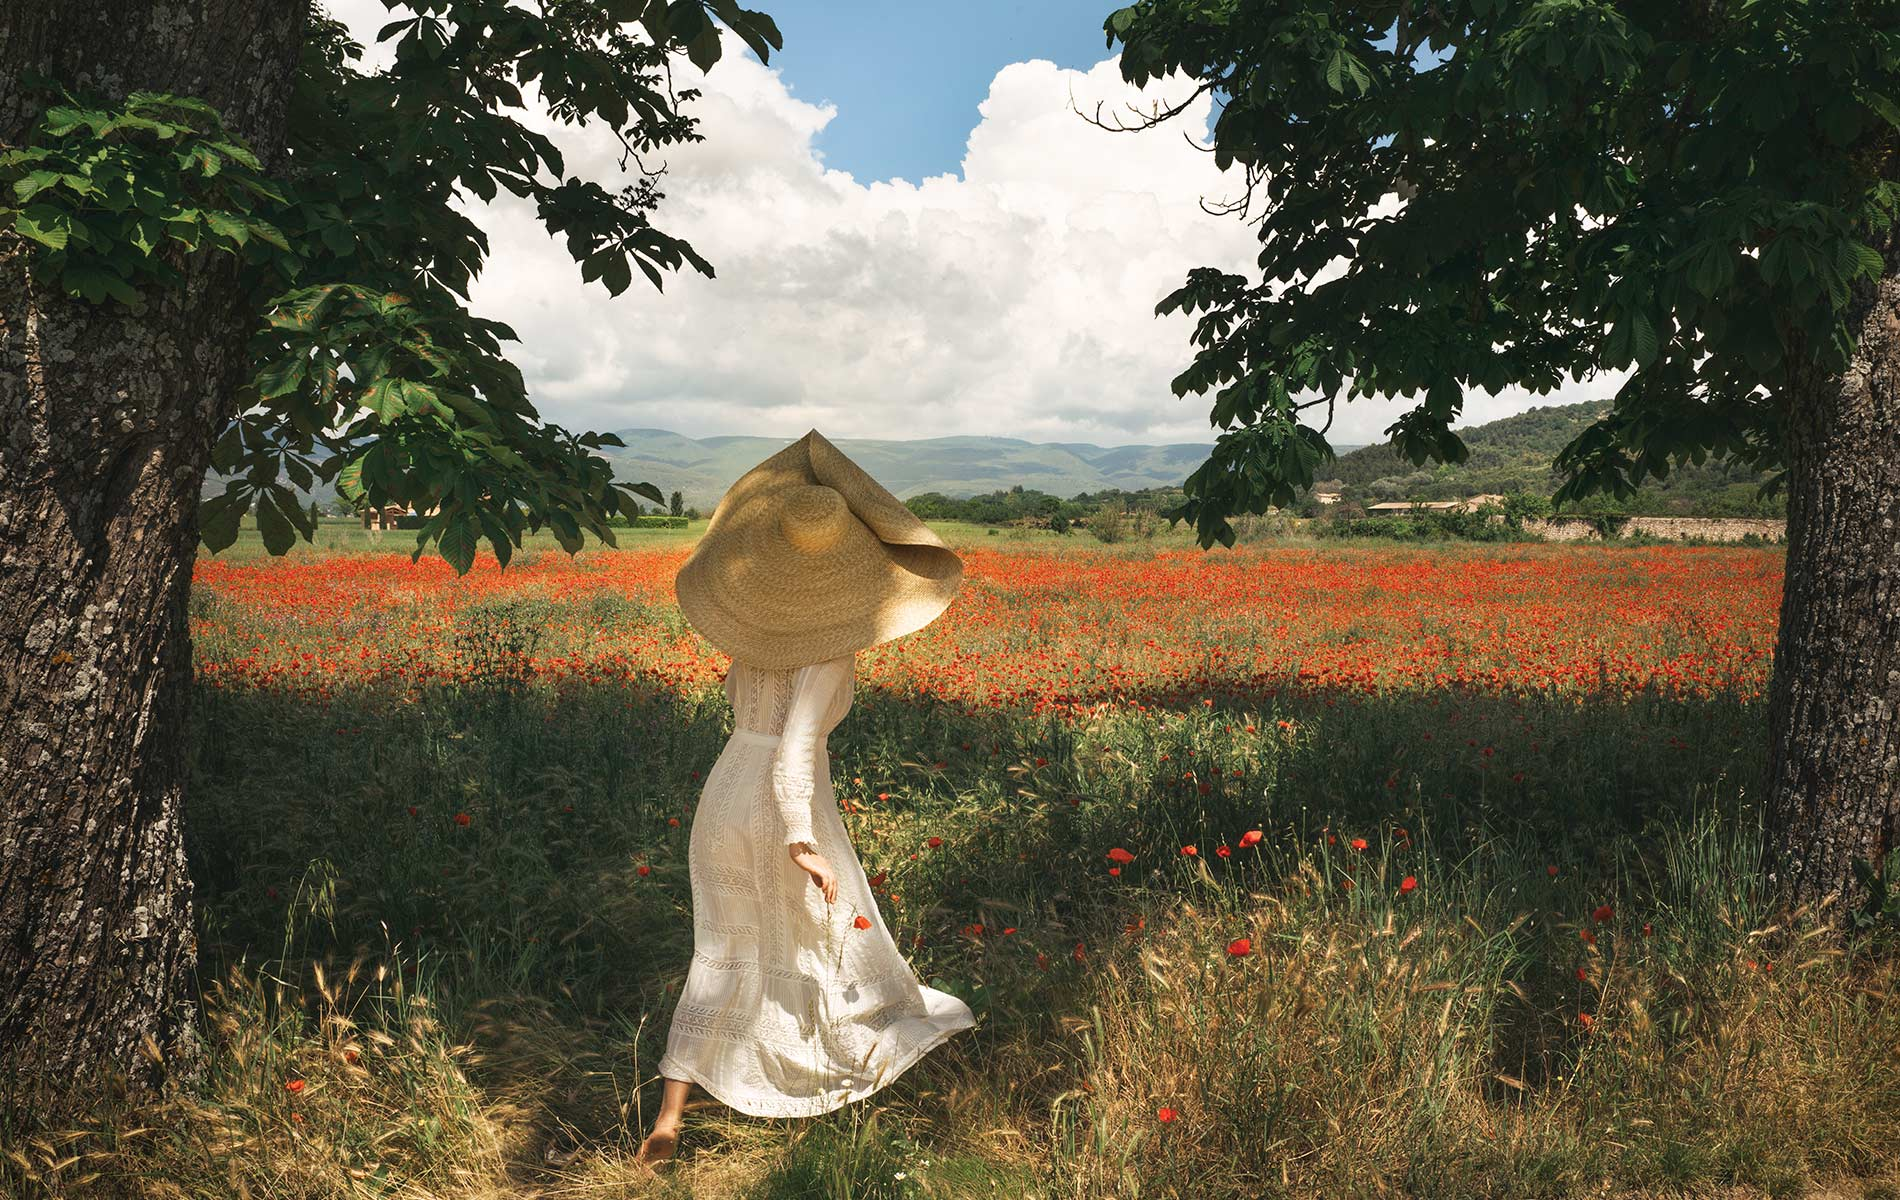 Photograph by Jamie Beck showing a woman standing in between 2 large trees looking out to a field of poppies